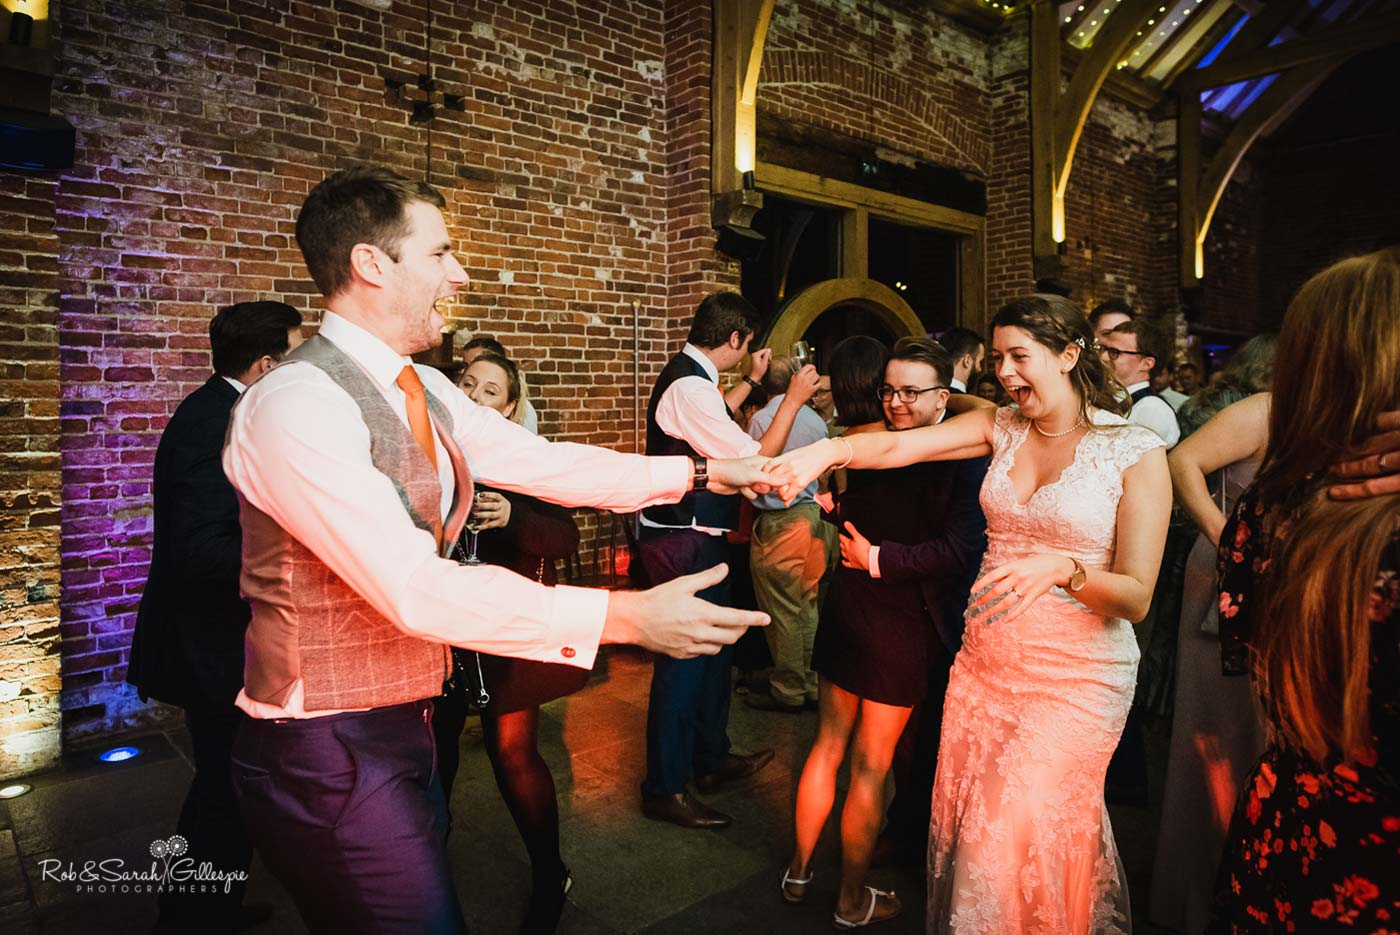 Wedding dancing at Hazel Gap Barn